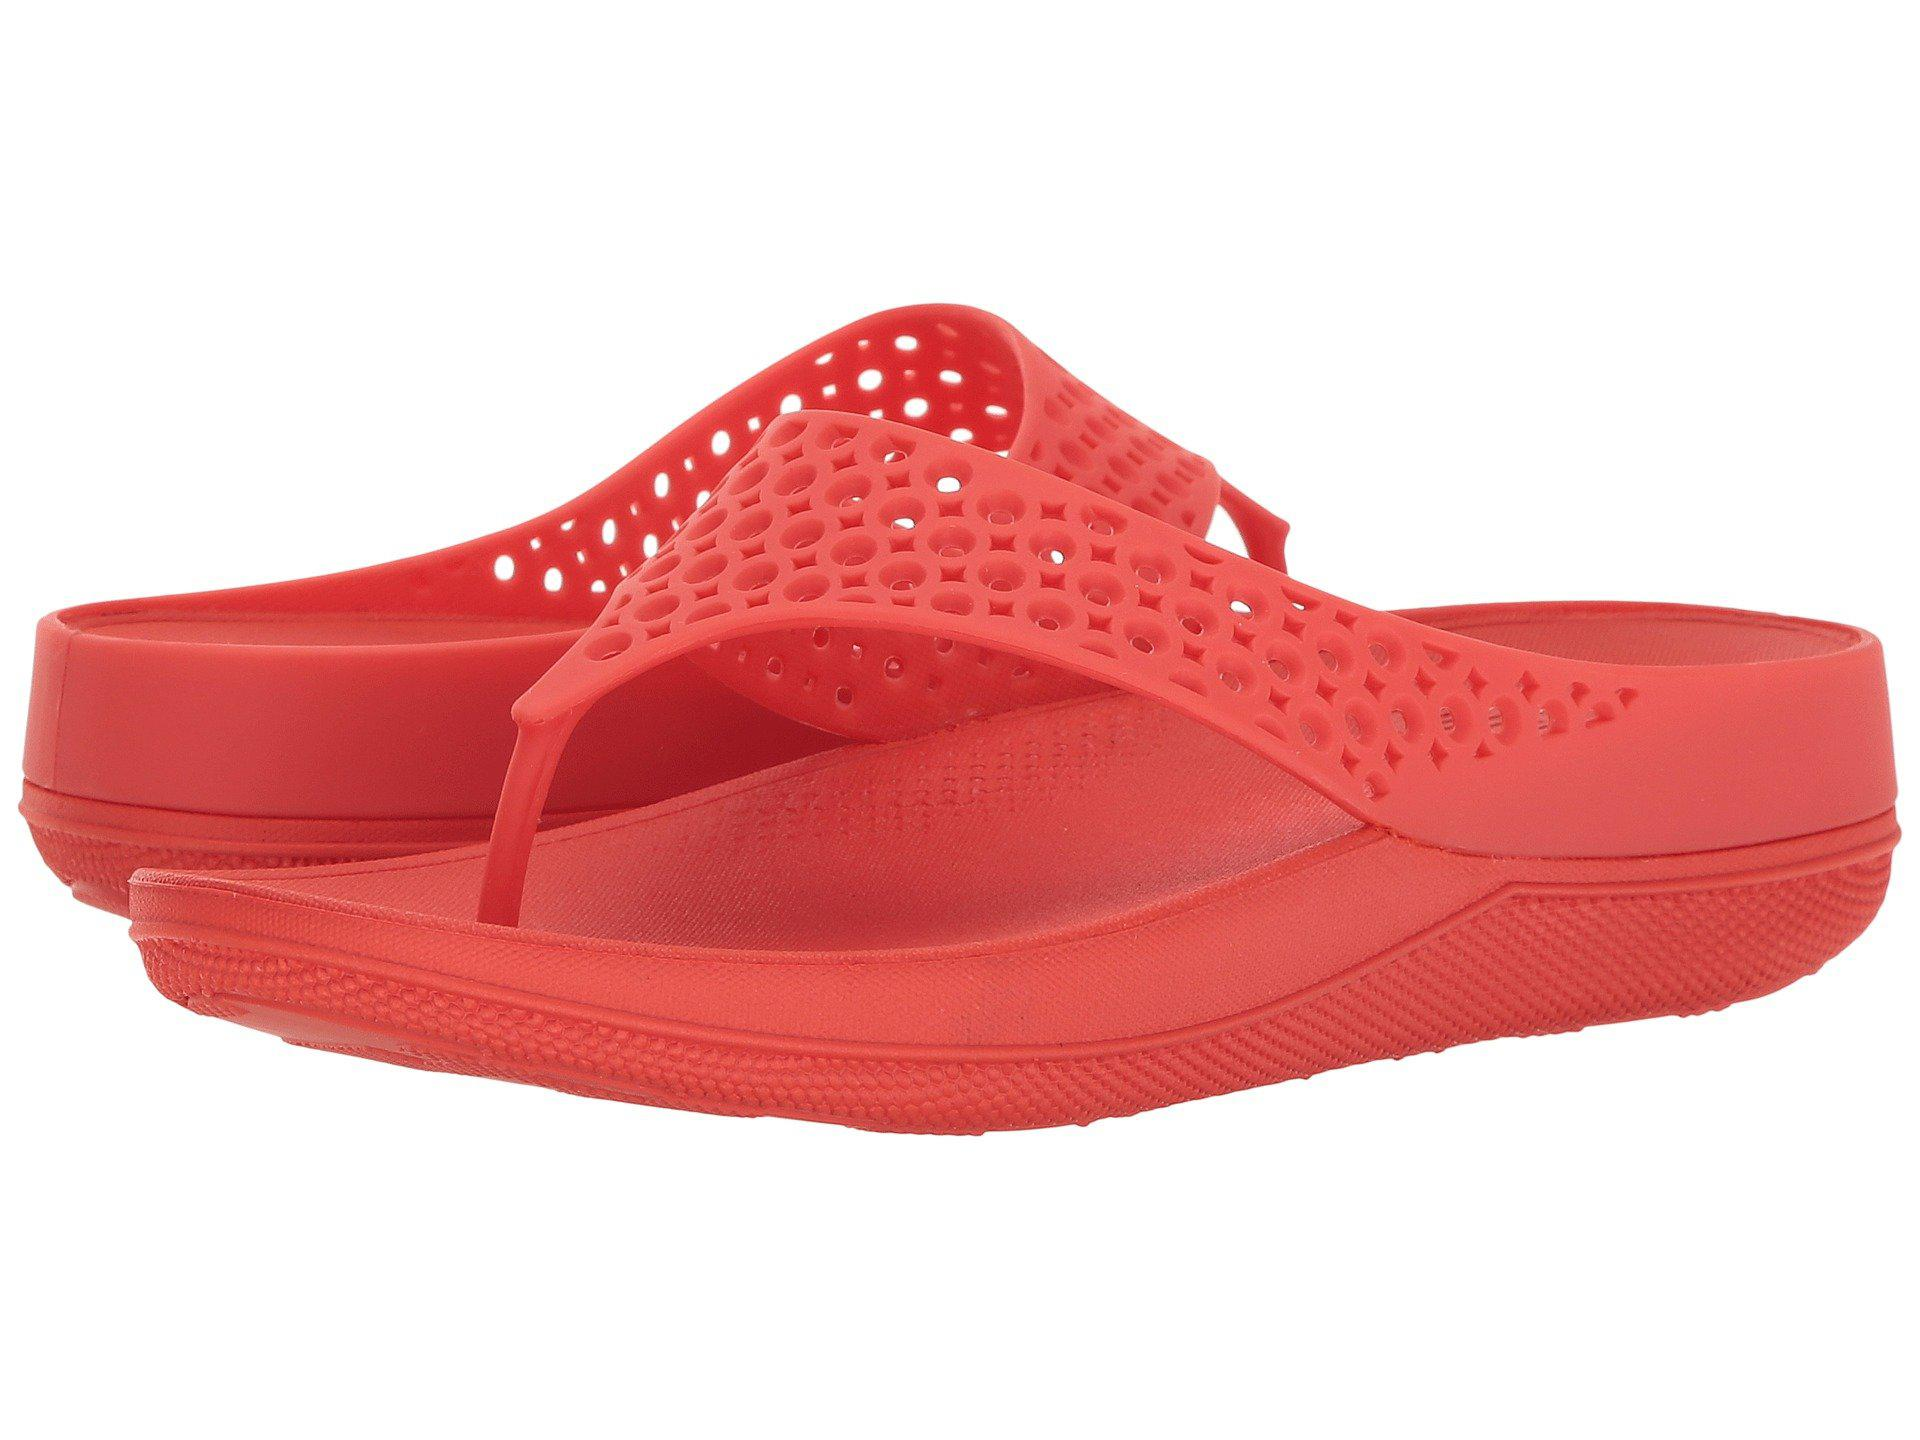 2dbda5e7023c3d Lyst - Fitflop Ringer Welljelly Flip-flop in Red - Save ...